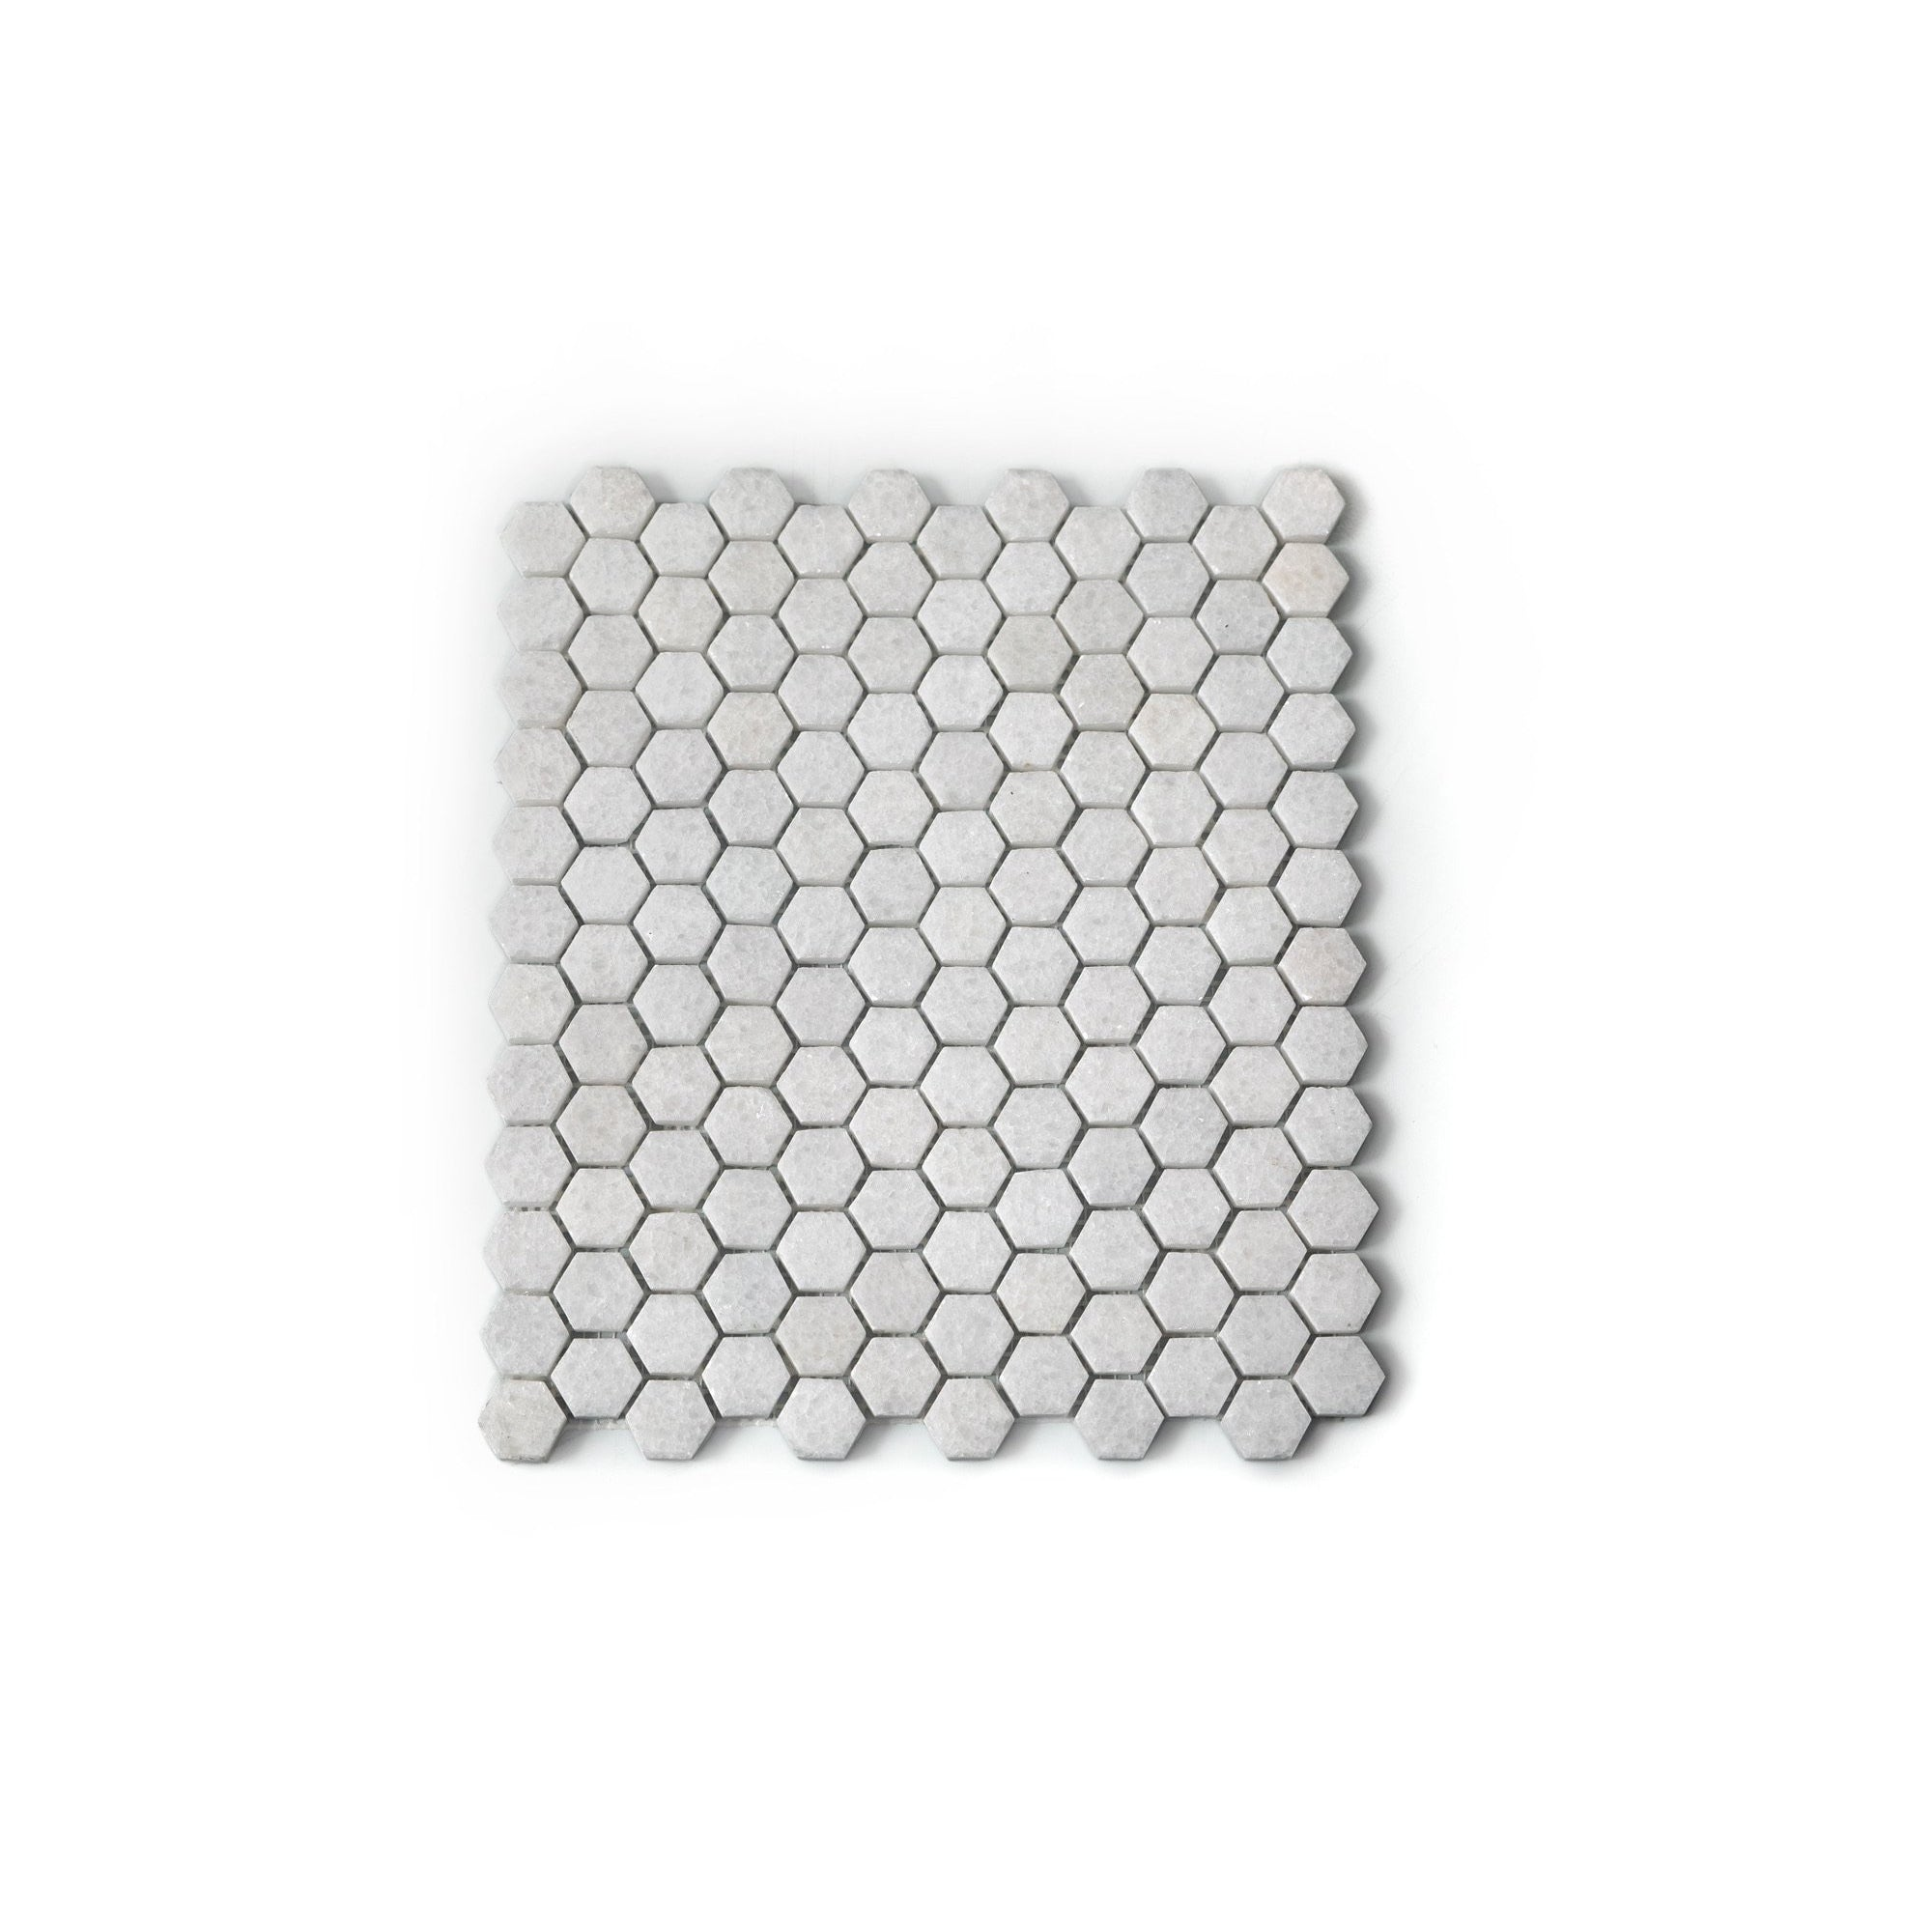 Natural Stone Mosaic Tiles - Crystal White Marble Hexagon (298x298mm)